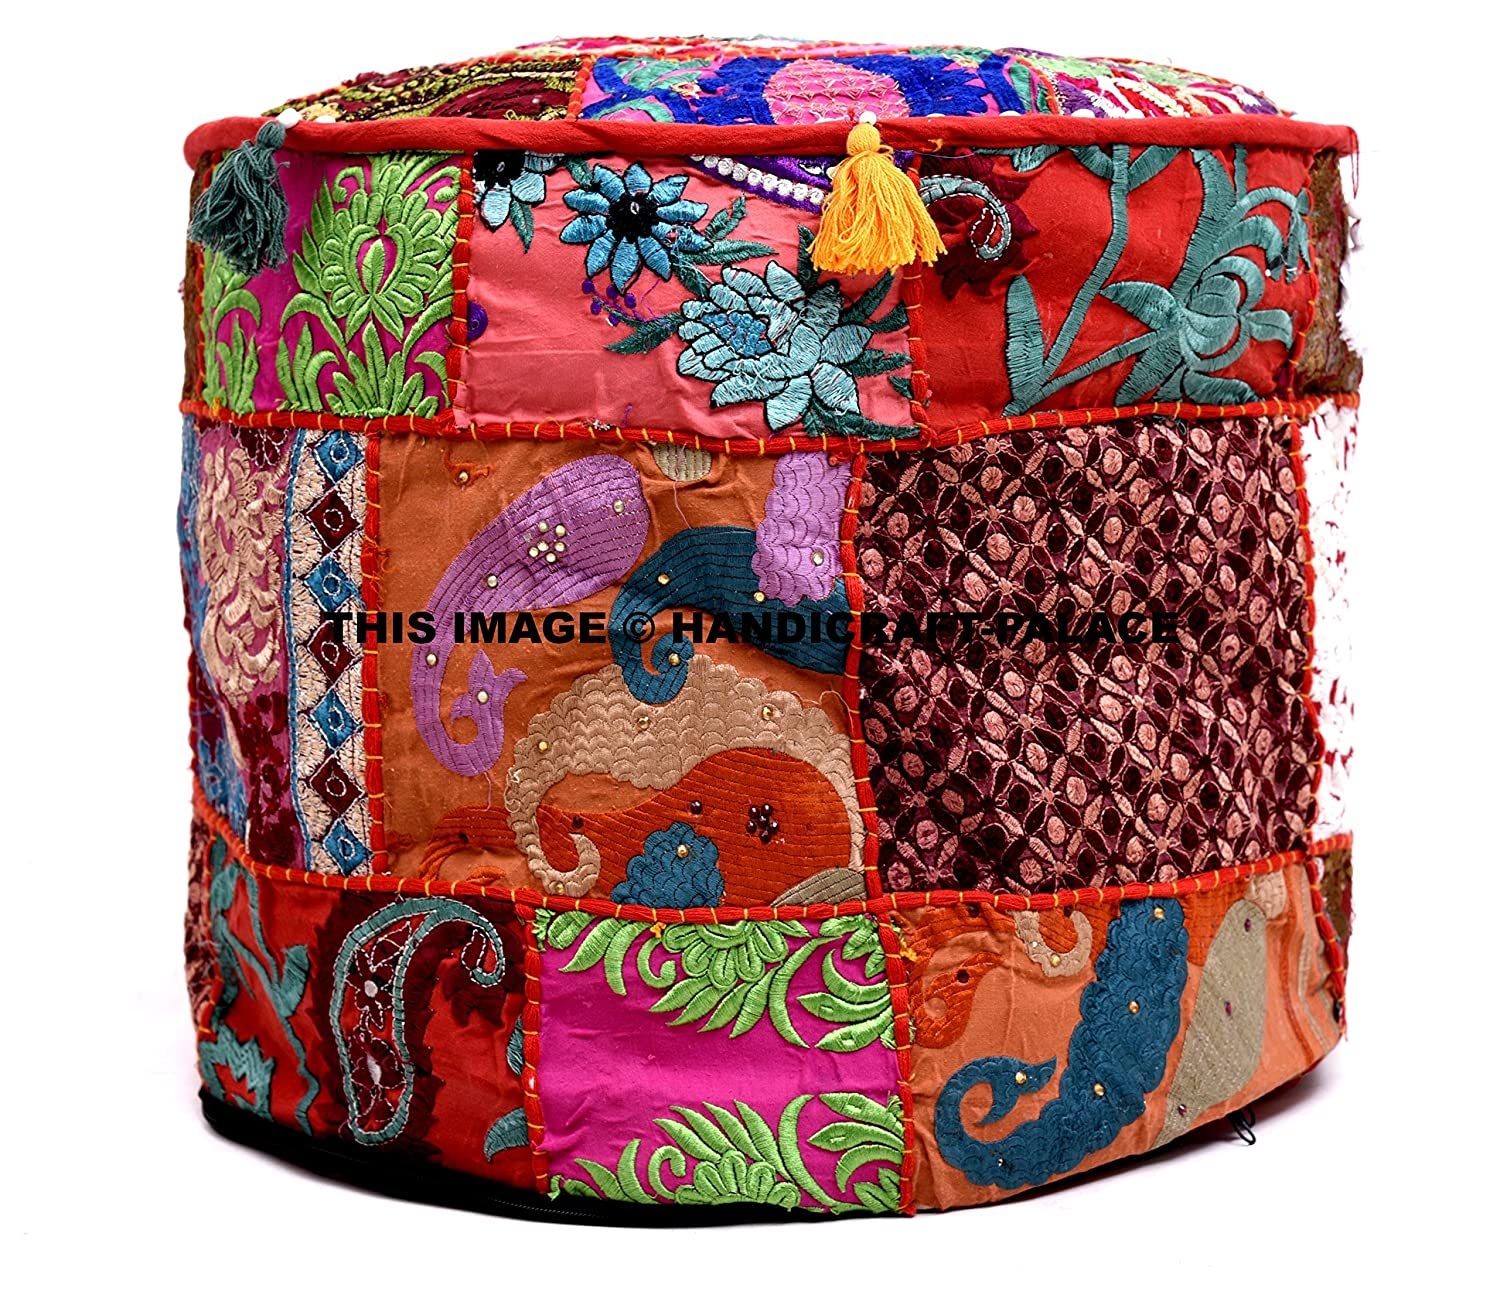 HANDICRAFT-PALACE Indian Pouf Stool Vintage Patchwork Embellished with Patchwork Living Room Ottoman Cover,100/% Cotton Art Decor Ottomans Comfortable Patchwork Floor Cushion